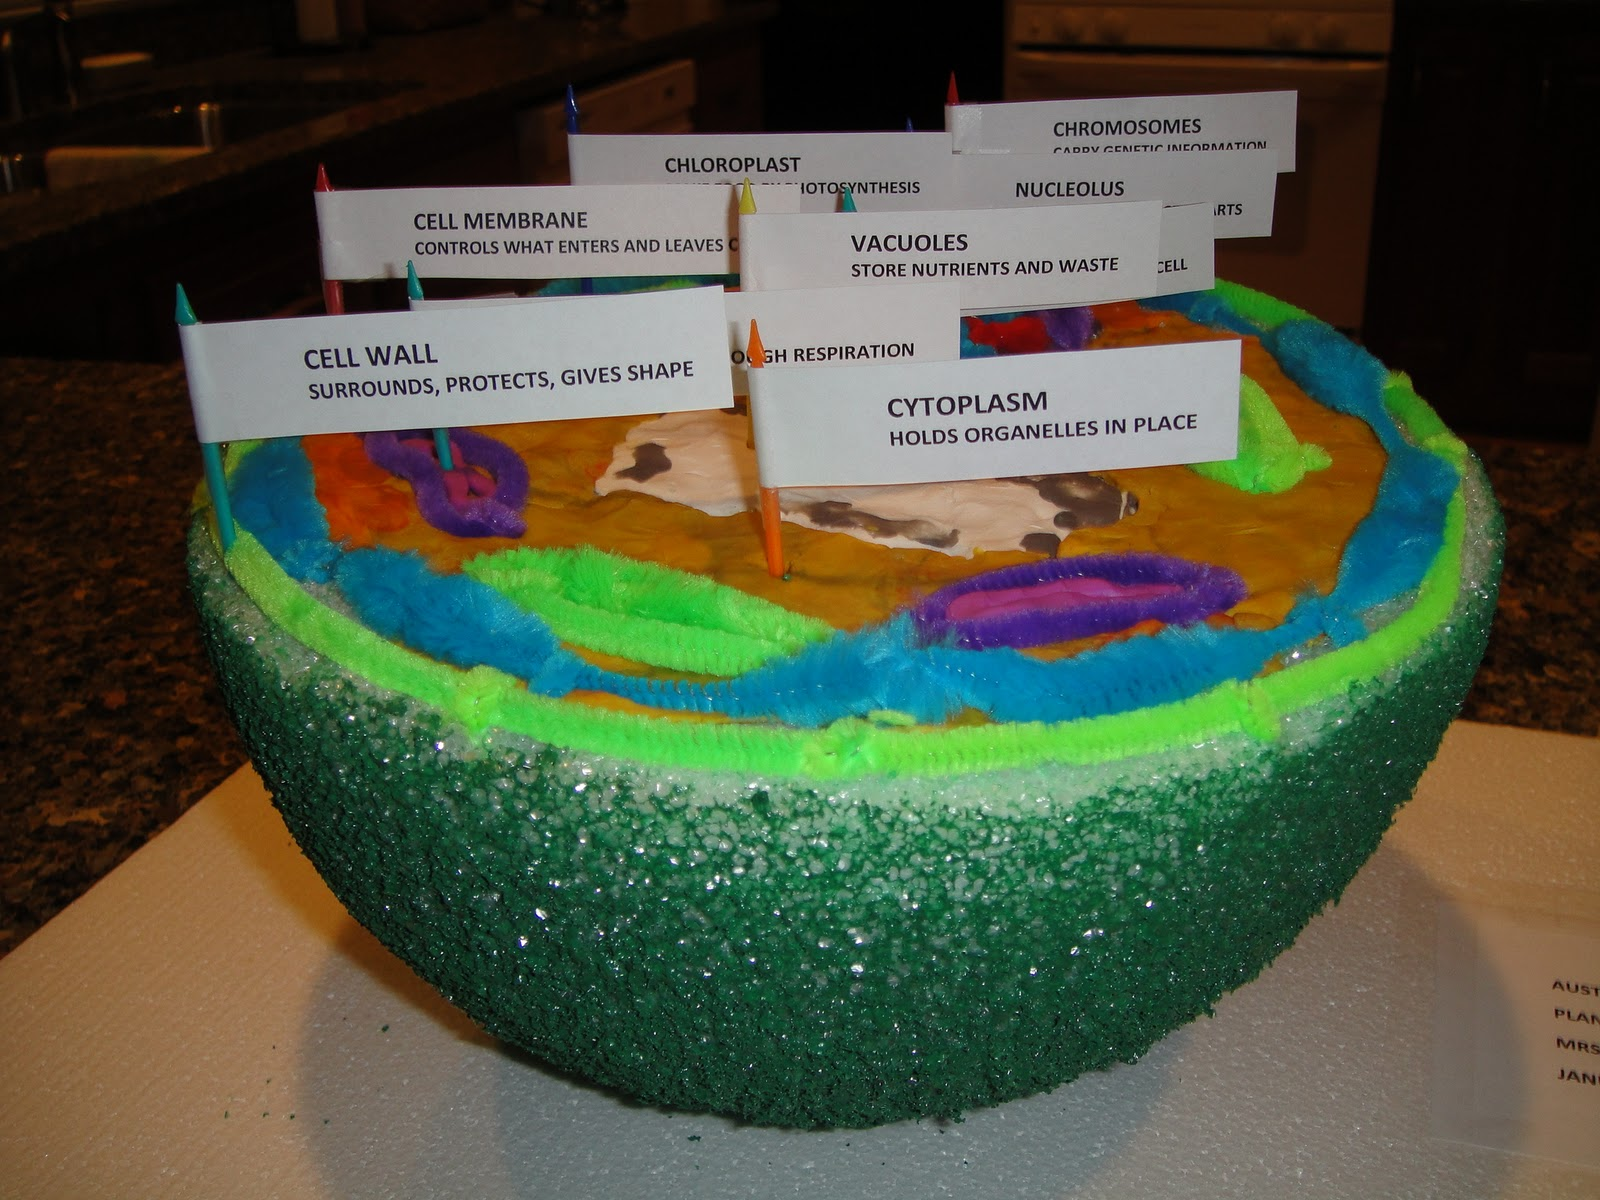 Plant Cell Styrofoam Model http://www.friendshiptea.net/2011/02/sixth-grade-science-project.html